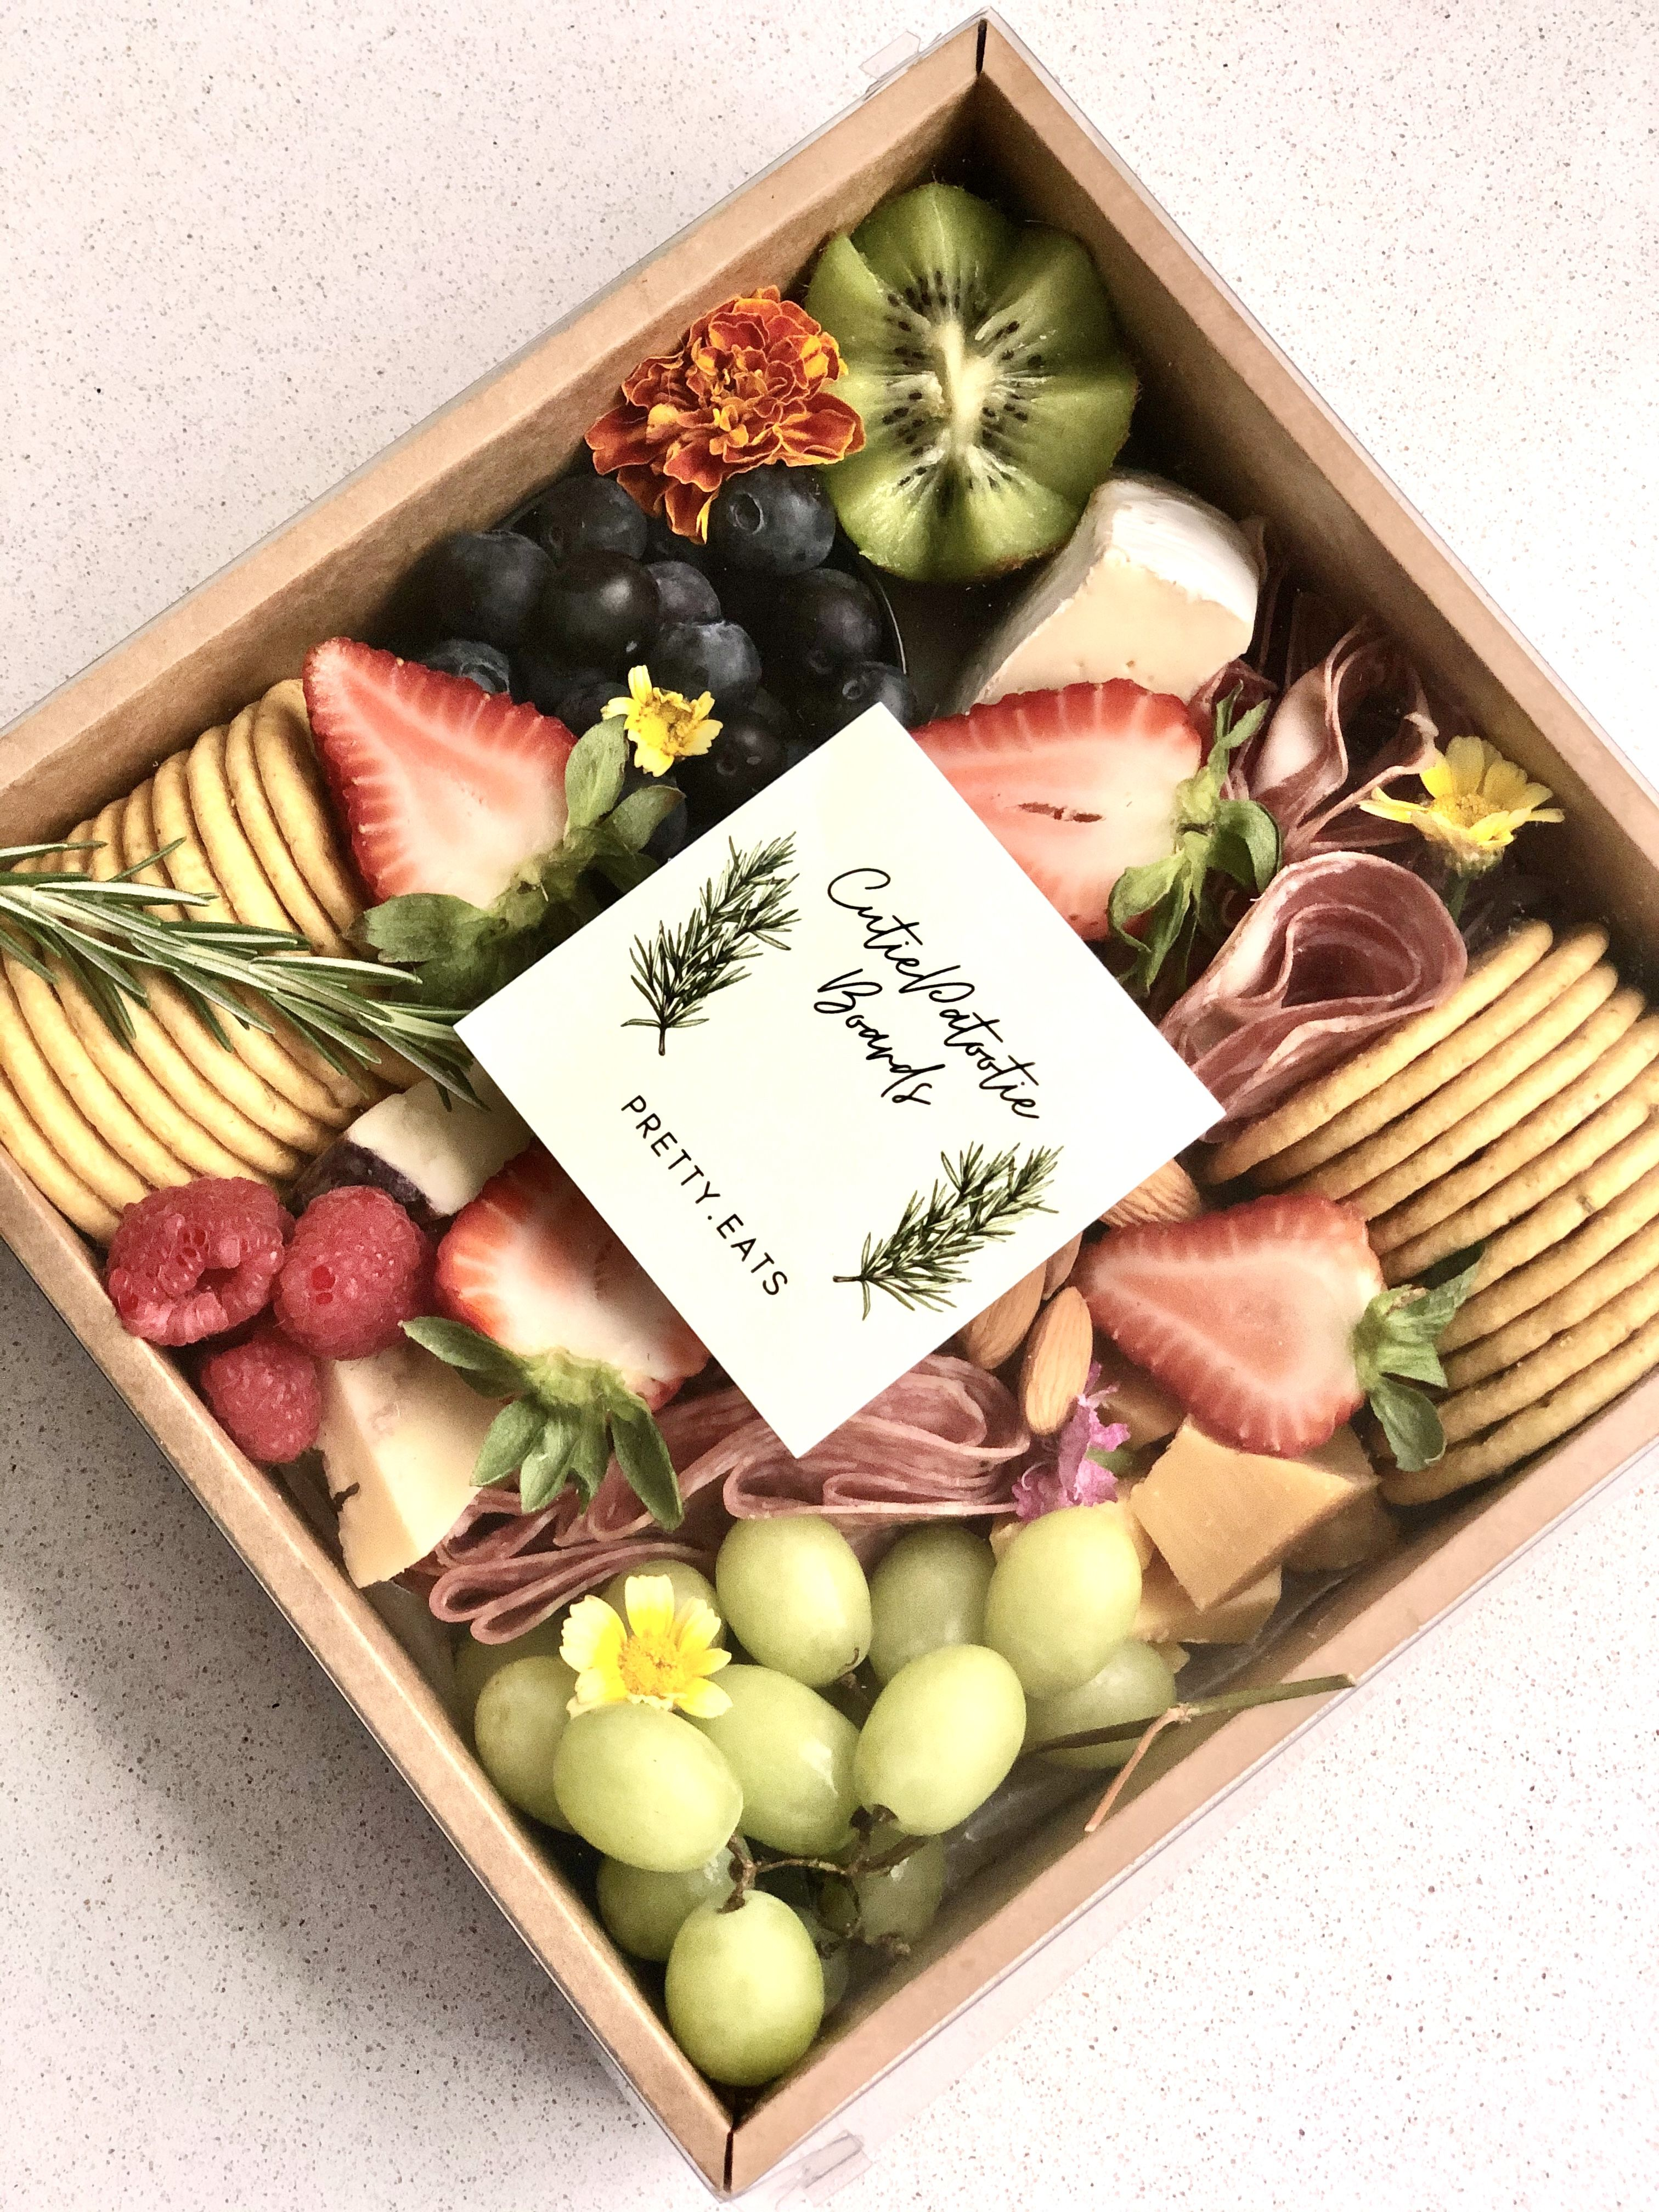 Charcuterie Box In 2020 Charcuterie Gifts Charcuterie Recipes Charcuterie Gift Box